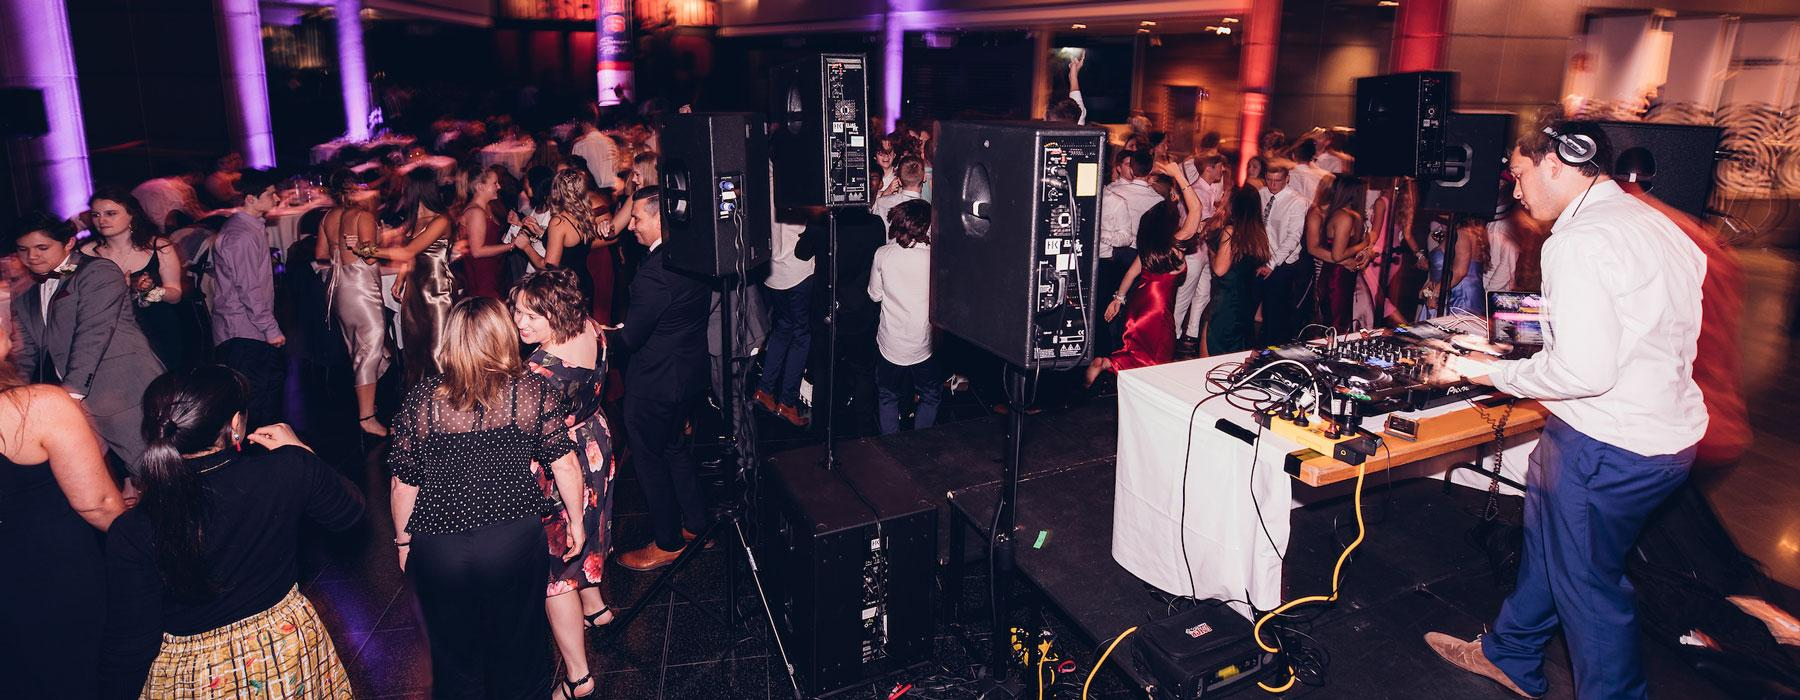 Young adults dancing in front of a DJ booth